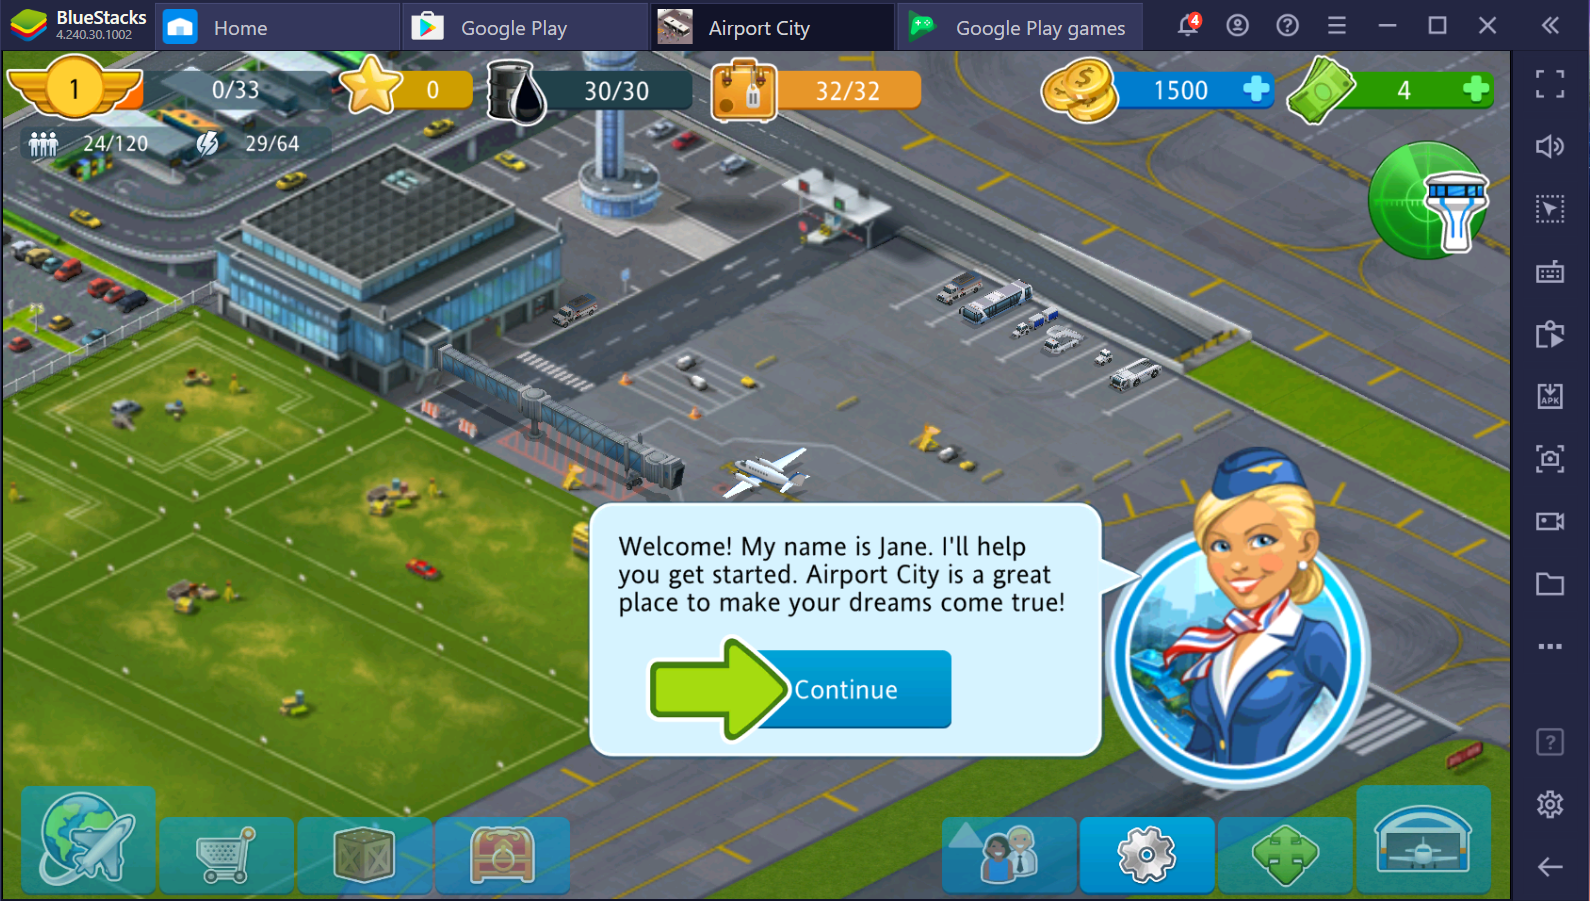 Airport City: Make Your Own Dream World A Reality